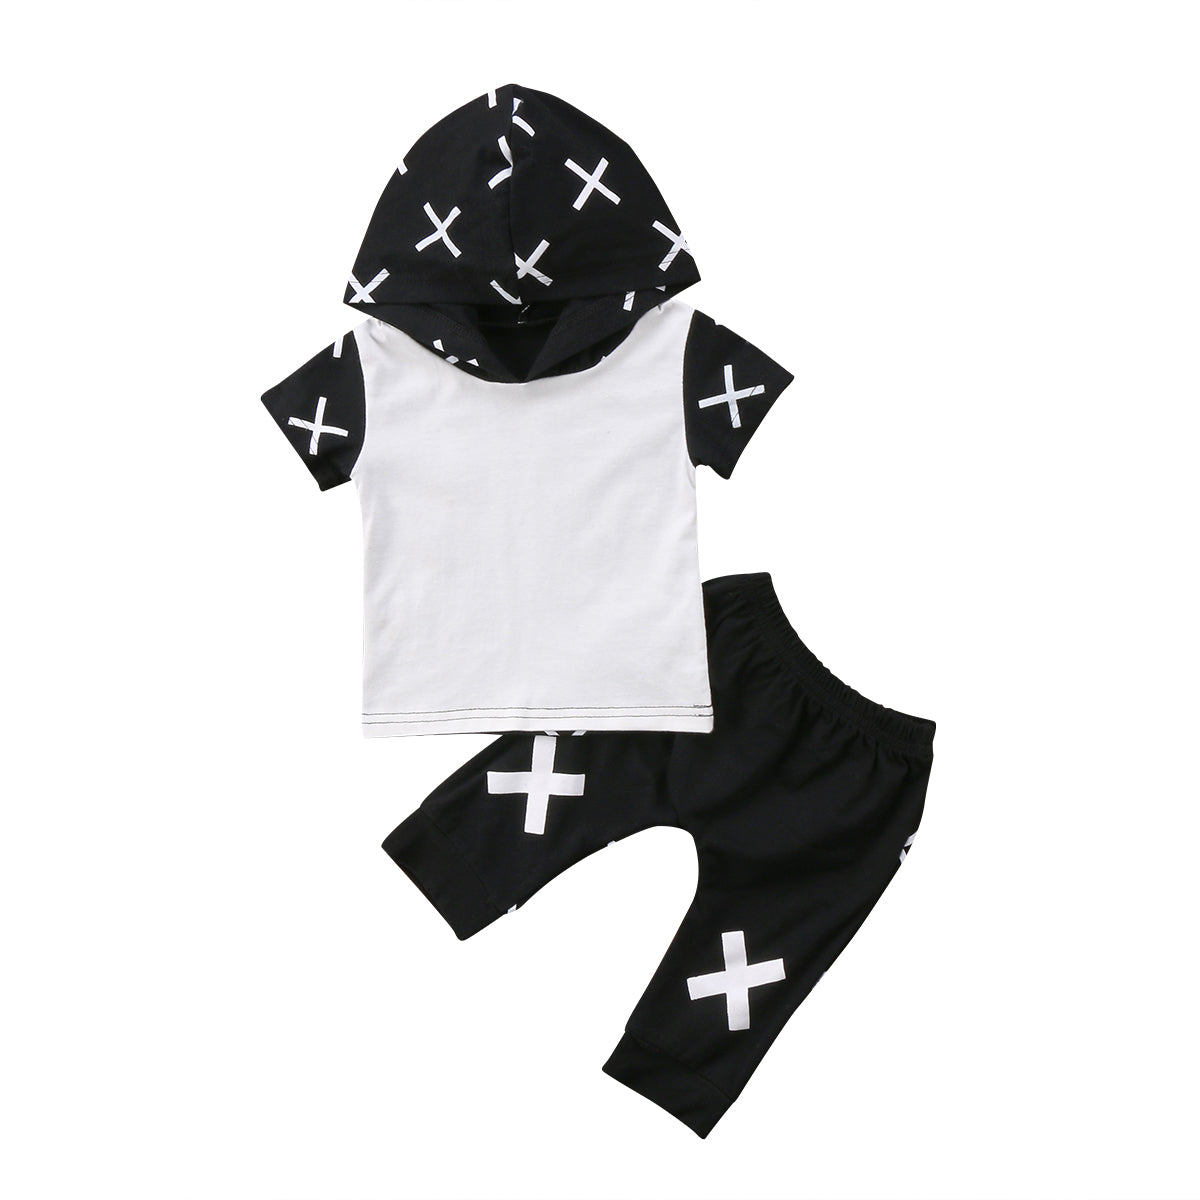 2pcs Newborn Toddler Kid Baby Boy Outfit Hooded T-shirt+Pants Shorts Clothes Set-eosegal